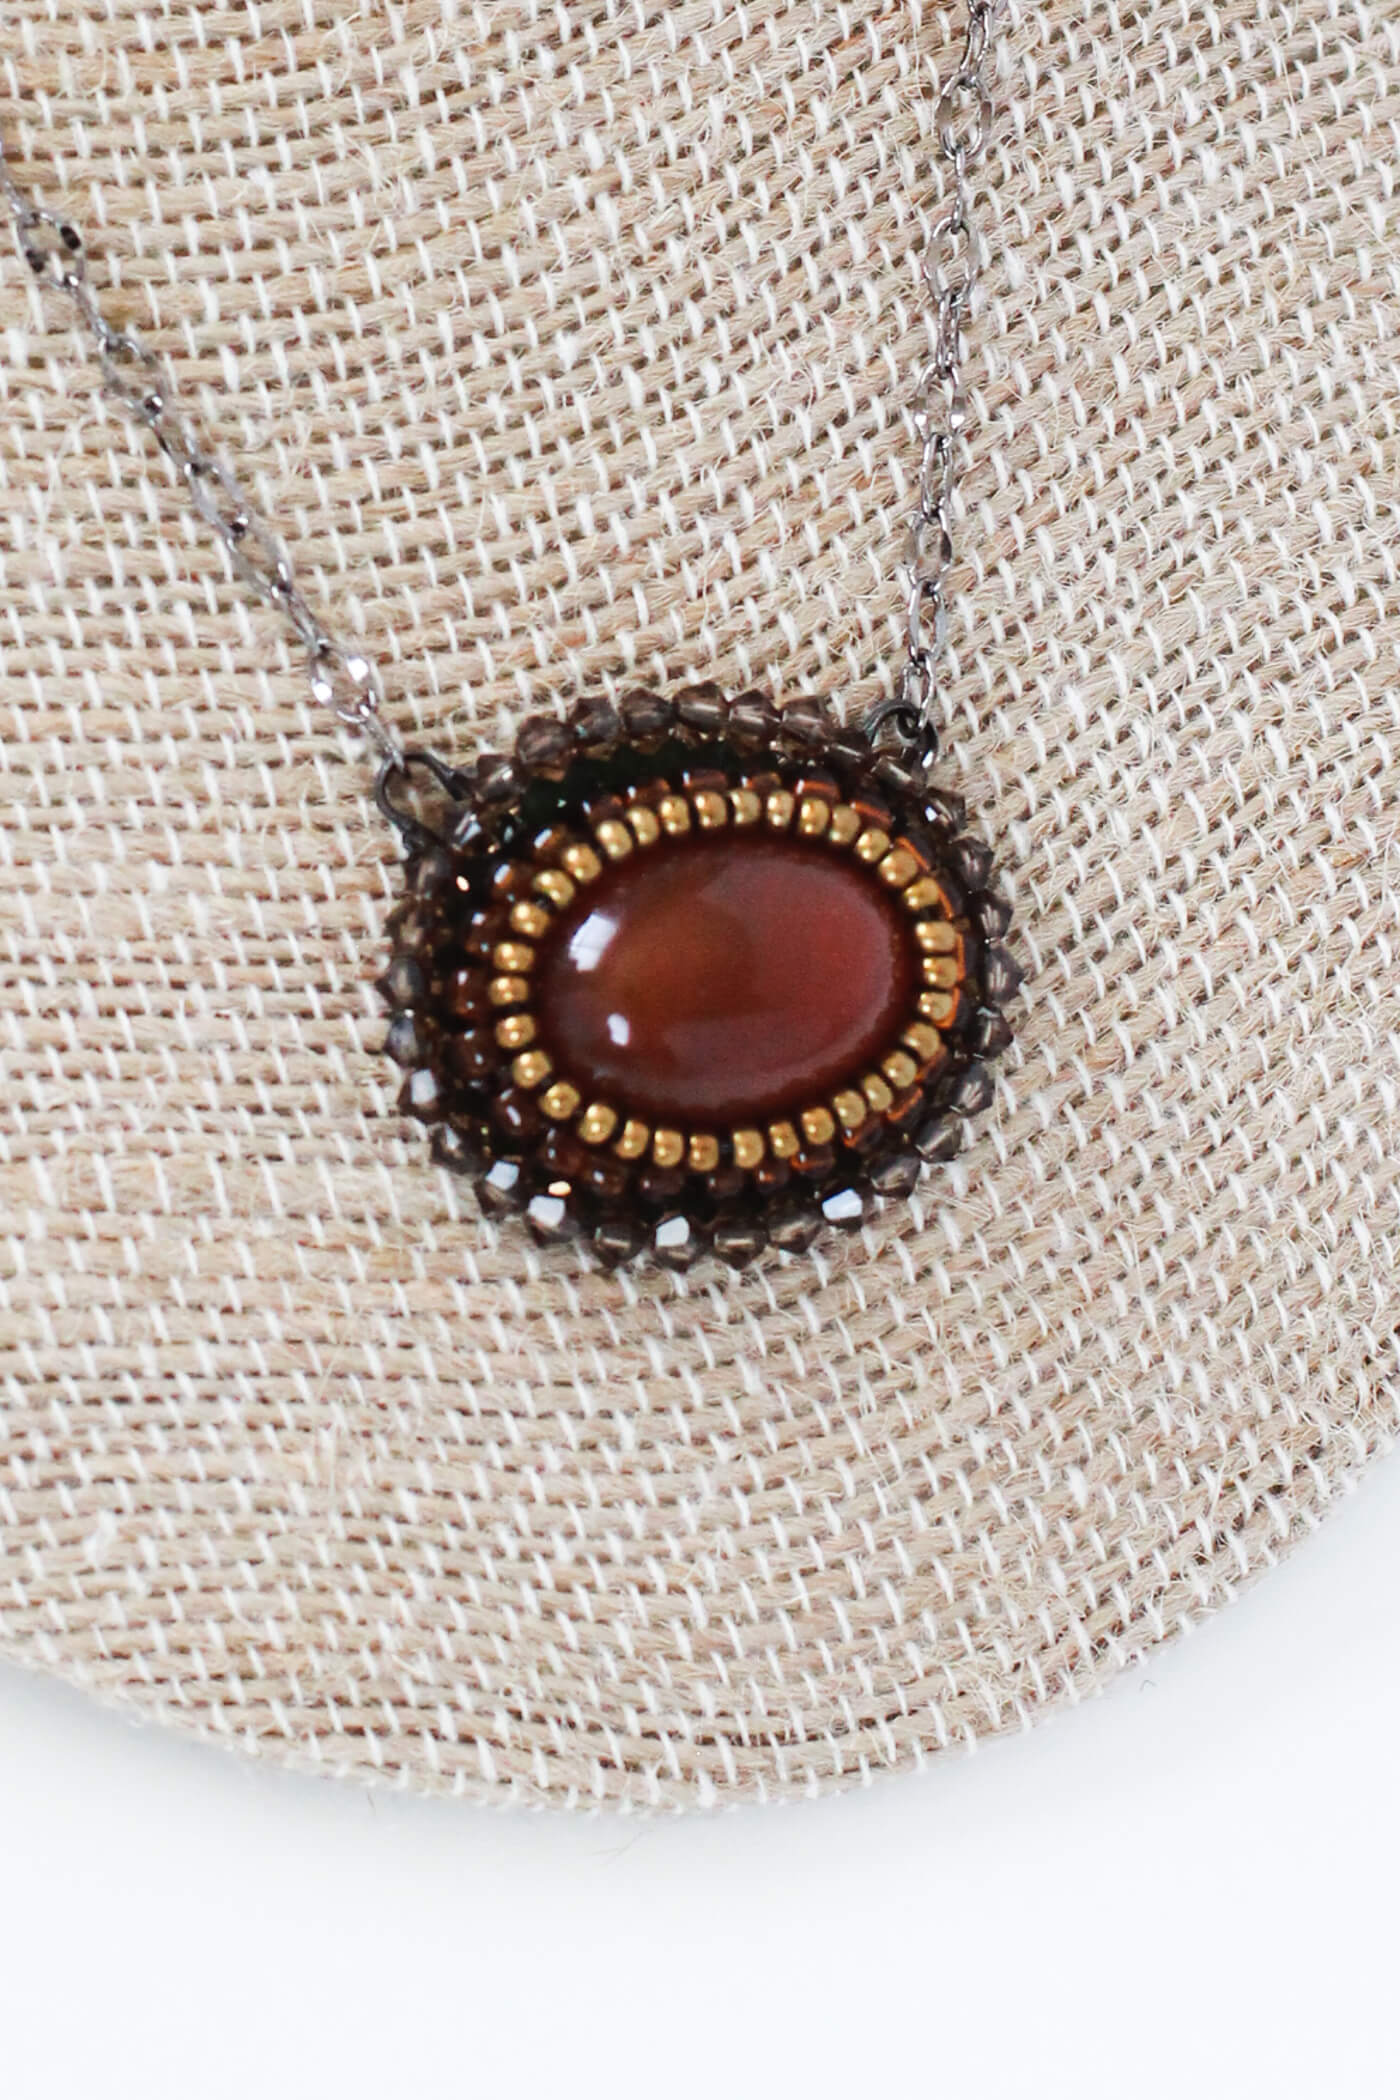 Carnelian Necklace – A Gemstone Necklace by Kaleidoscopes And Polka Dots